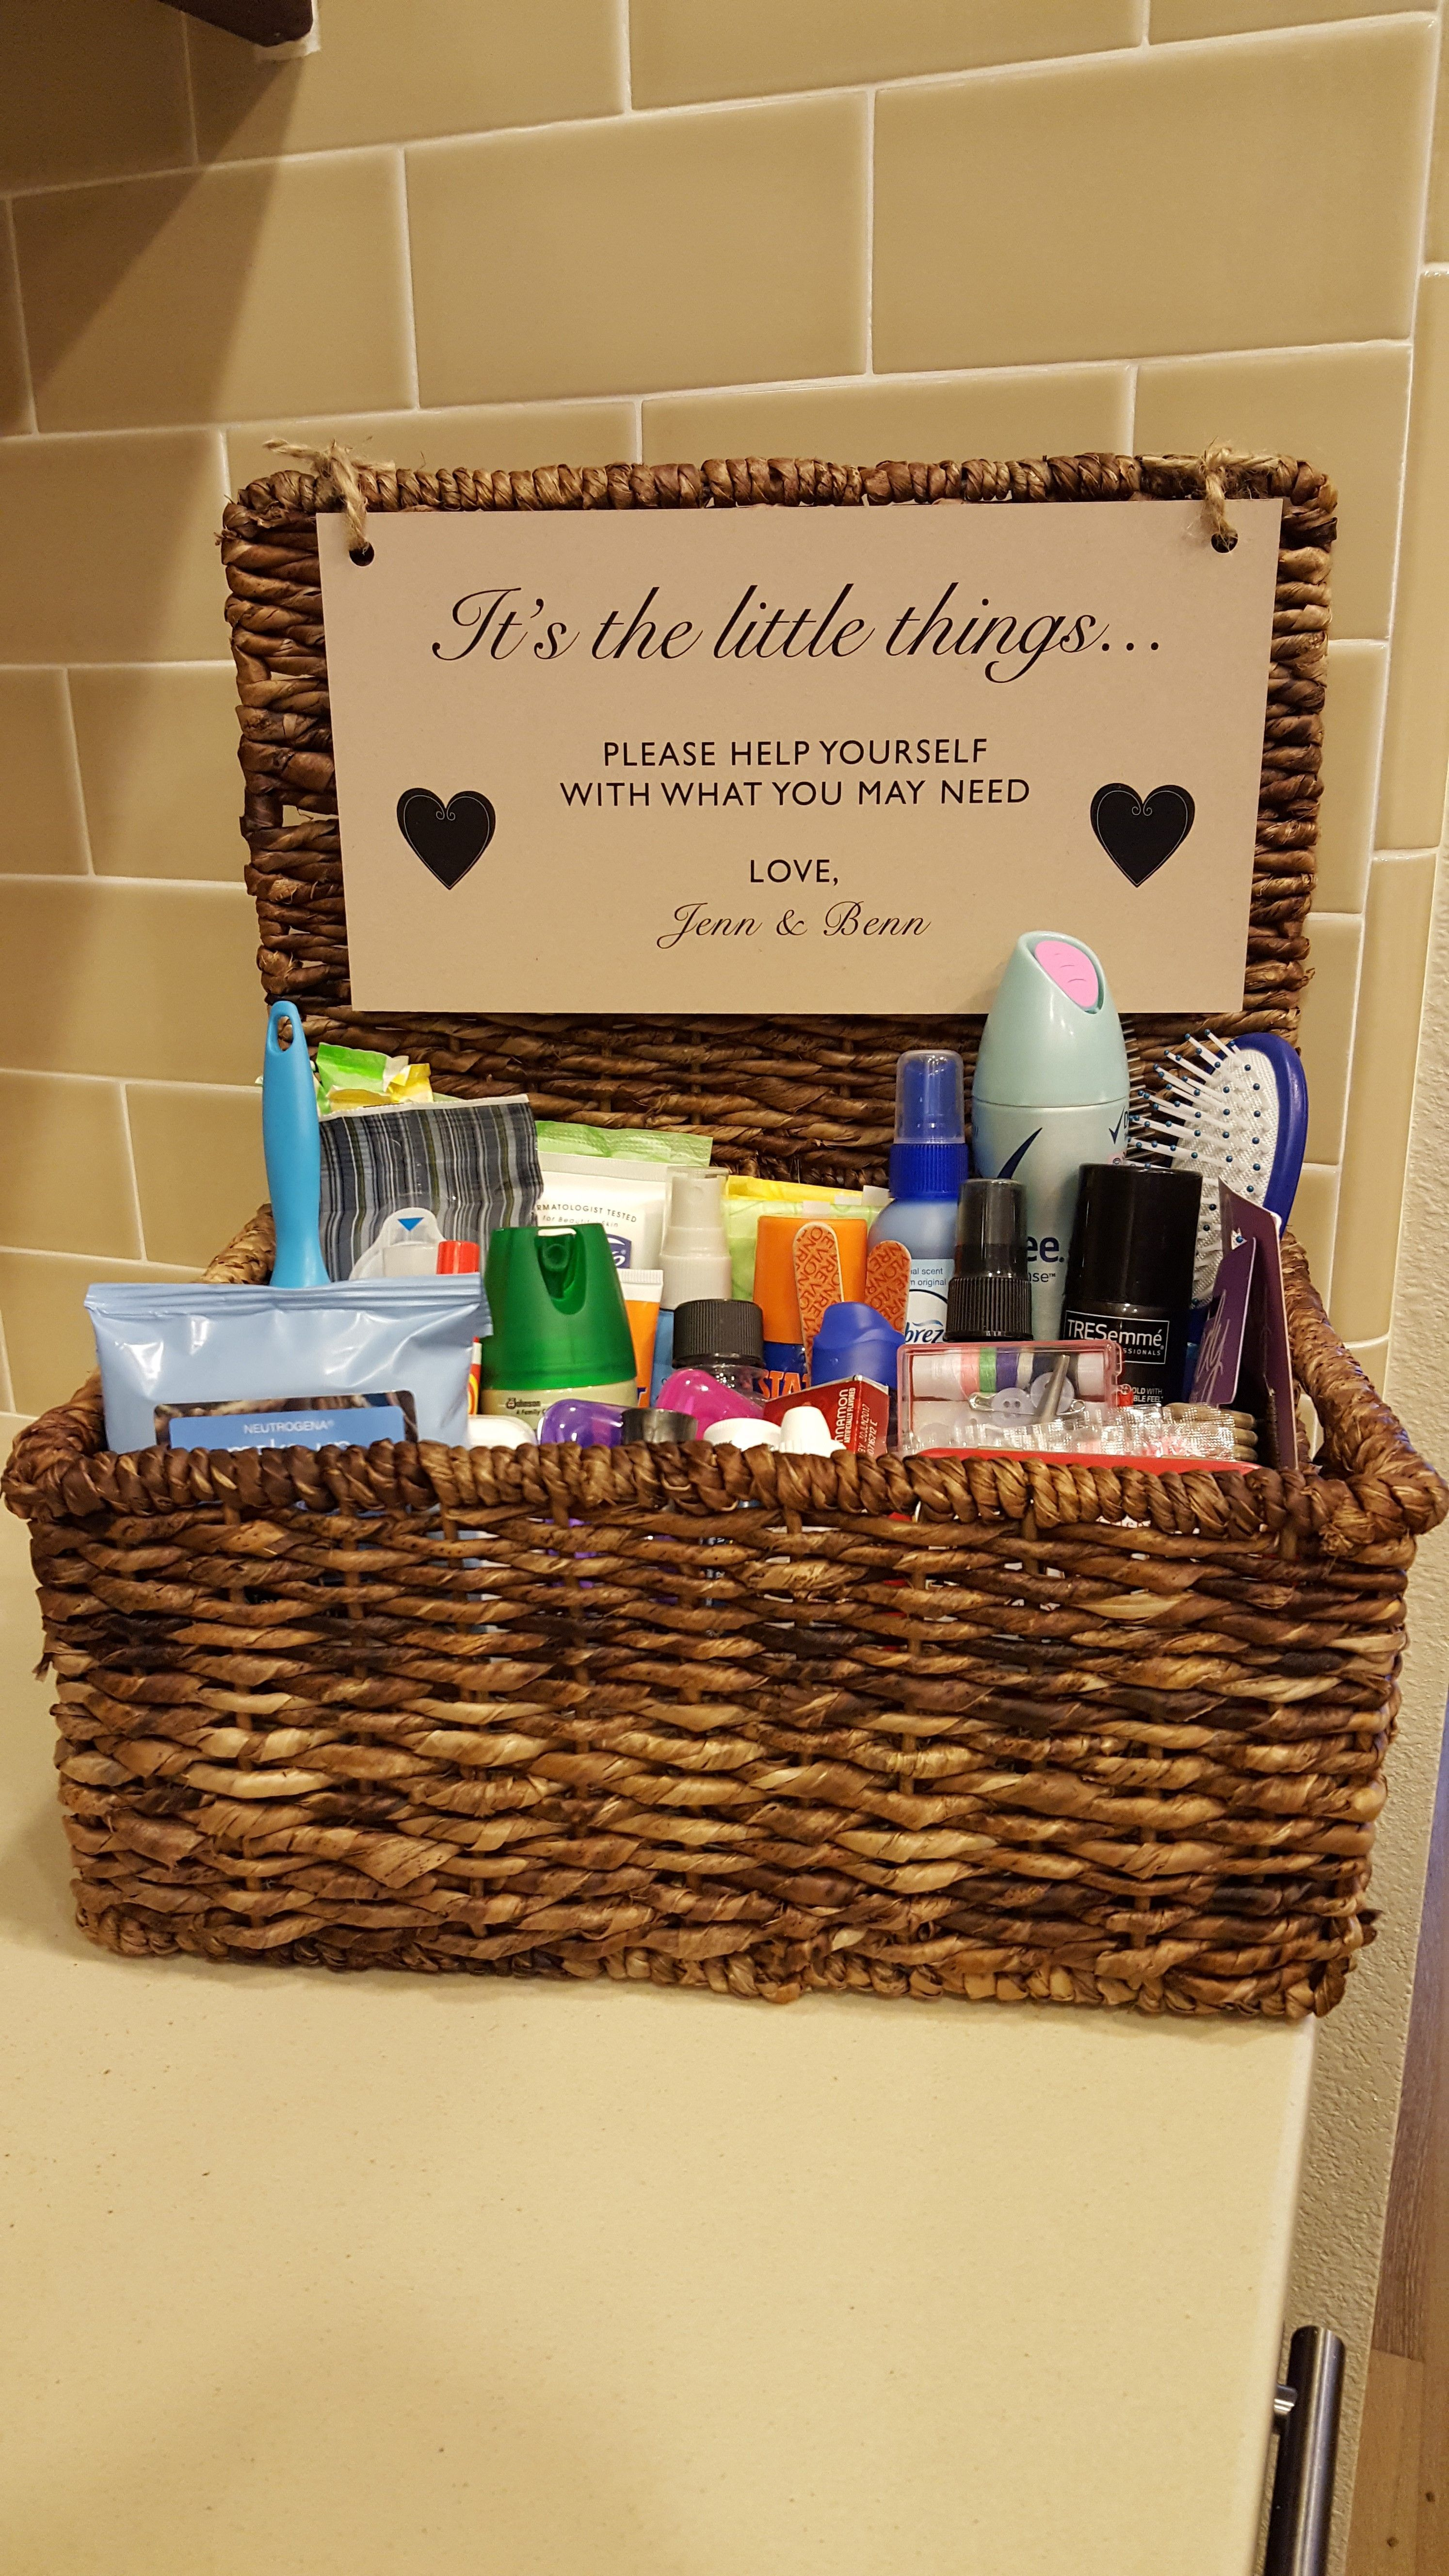 Unusual Wedding Favours, What To Put In Bathroom Baskets